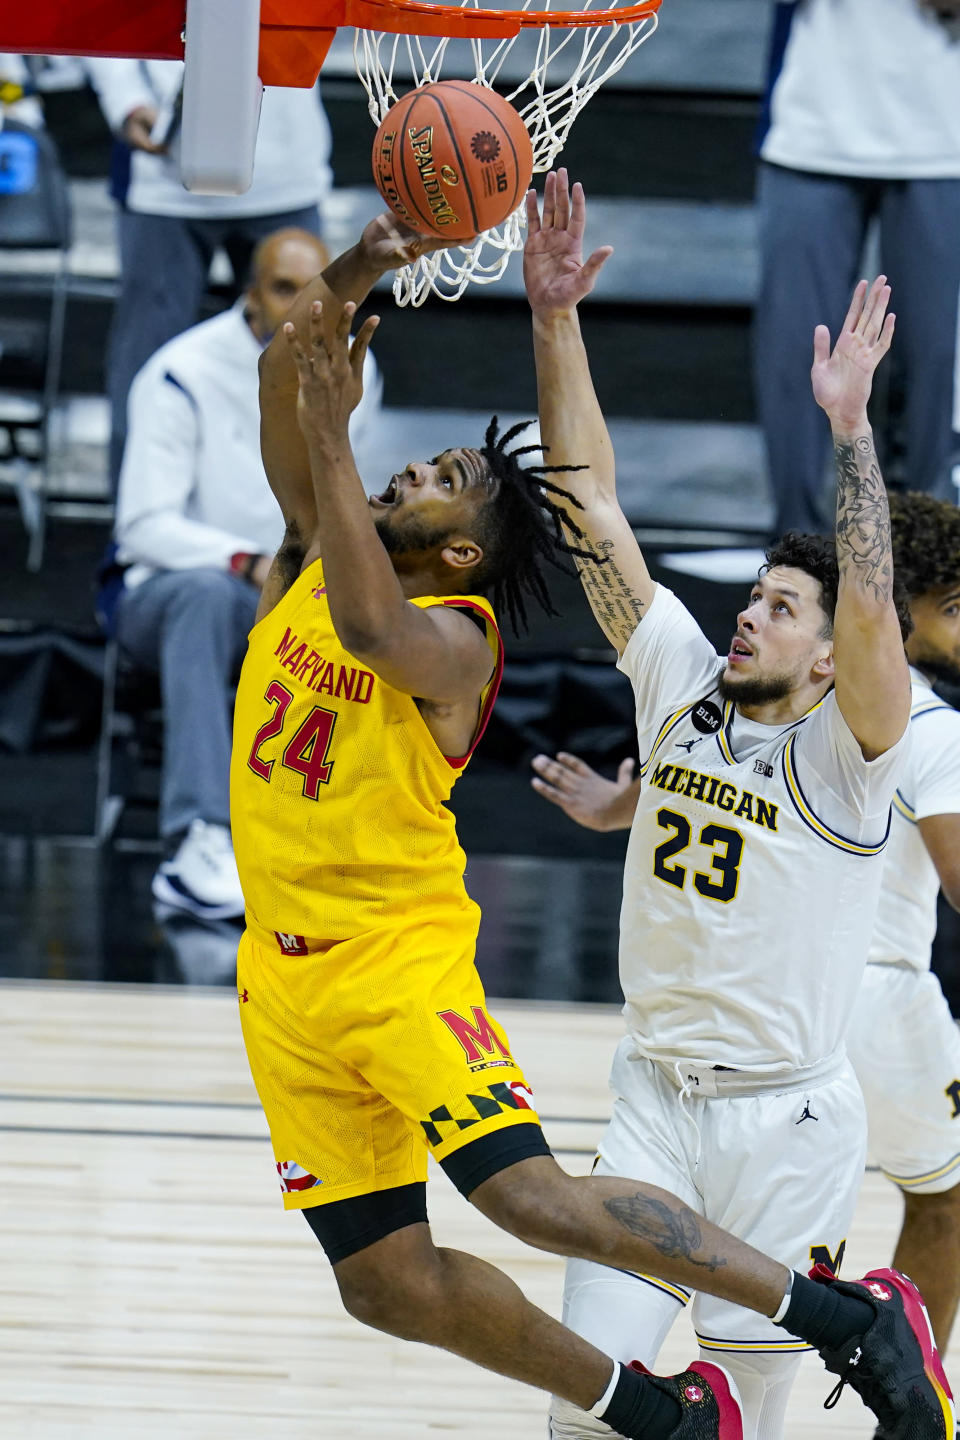 Maryland forward Donta Scott (24) shoots in front of Michigan forward Brandon Johns Jr. (23) in the first half of an NCAA college basketball game at the Big Ten Conference tournament in Indianapolis, Friday, March 12, 2021. (AP Photo/Michael Conroy)